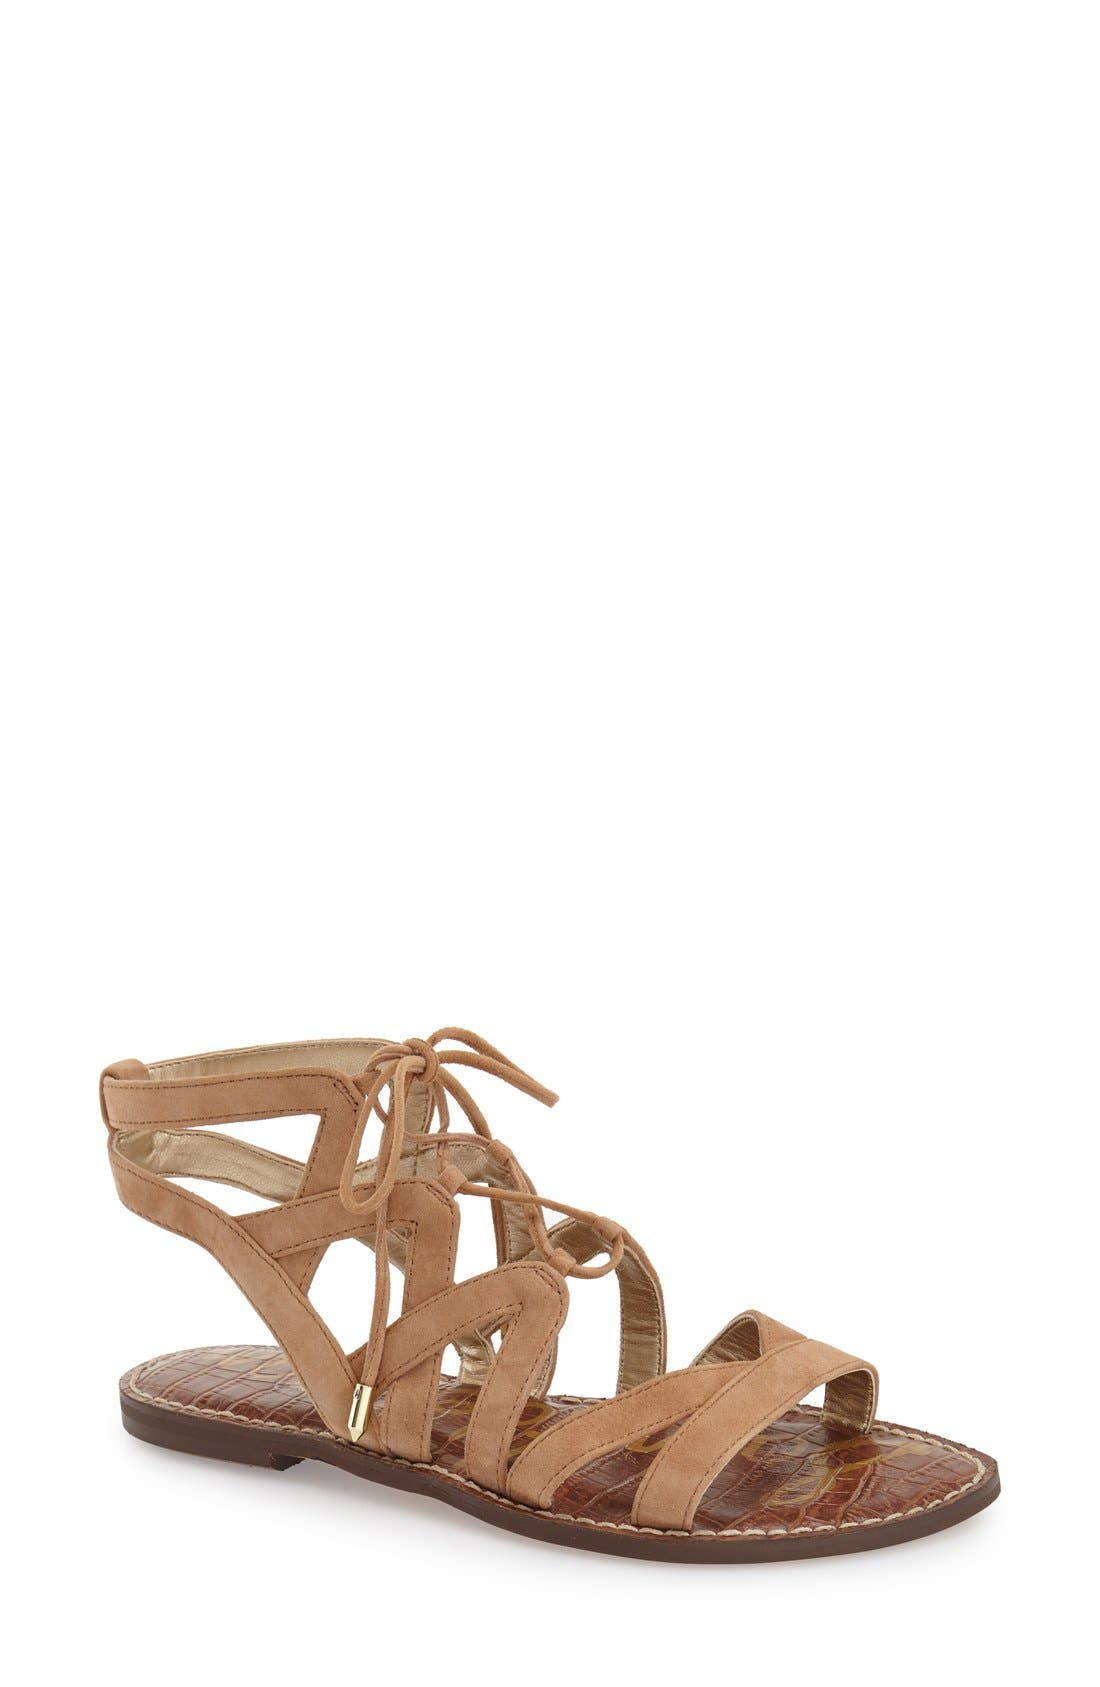 Alternate Image 1 Selected - Sam Edelman 'Gemma' Lace-Up Sandal (Women)